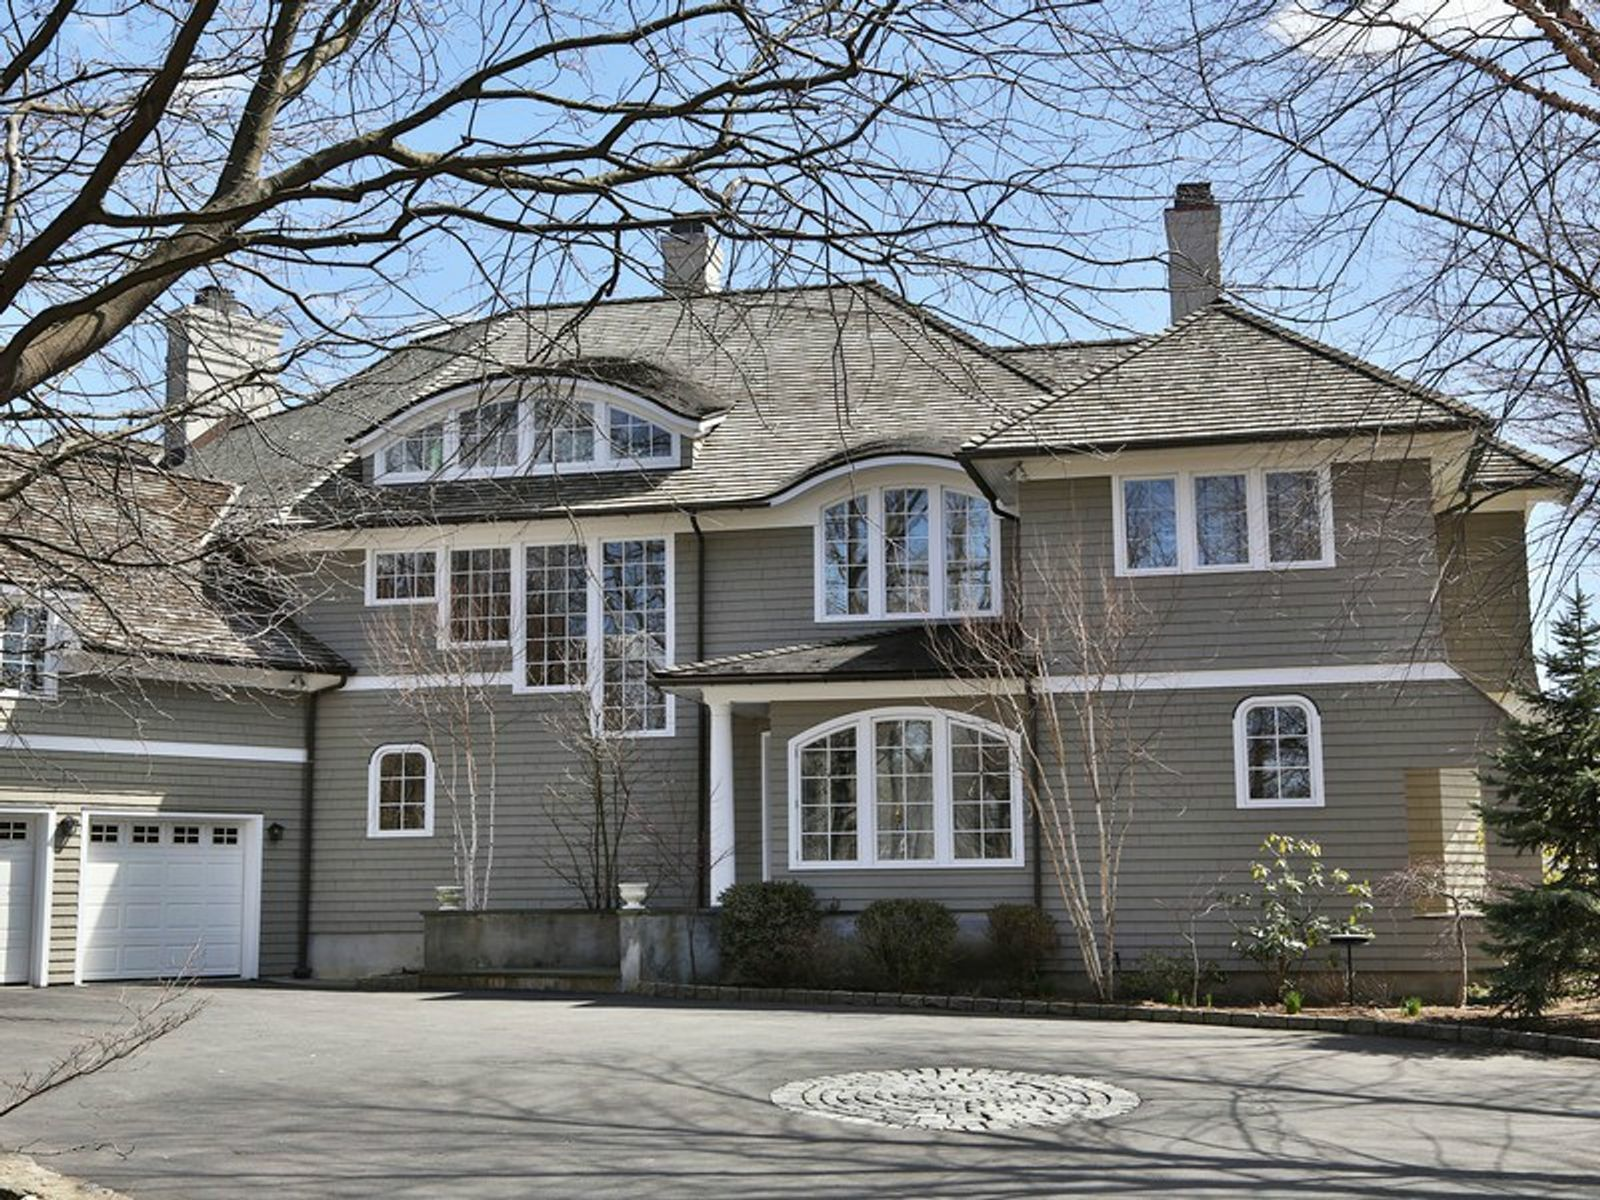 Nantucket Style Living, Greenwich CT Single Family Home - Greenwich Real Estate